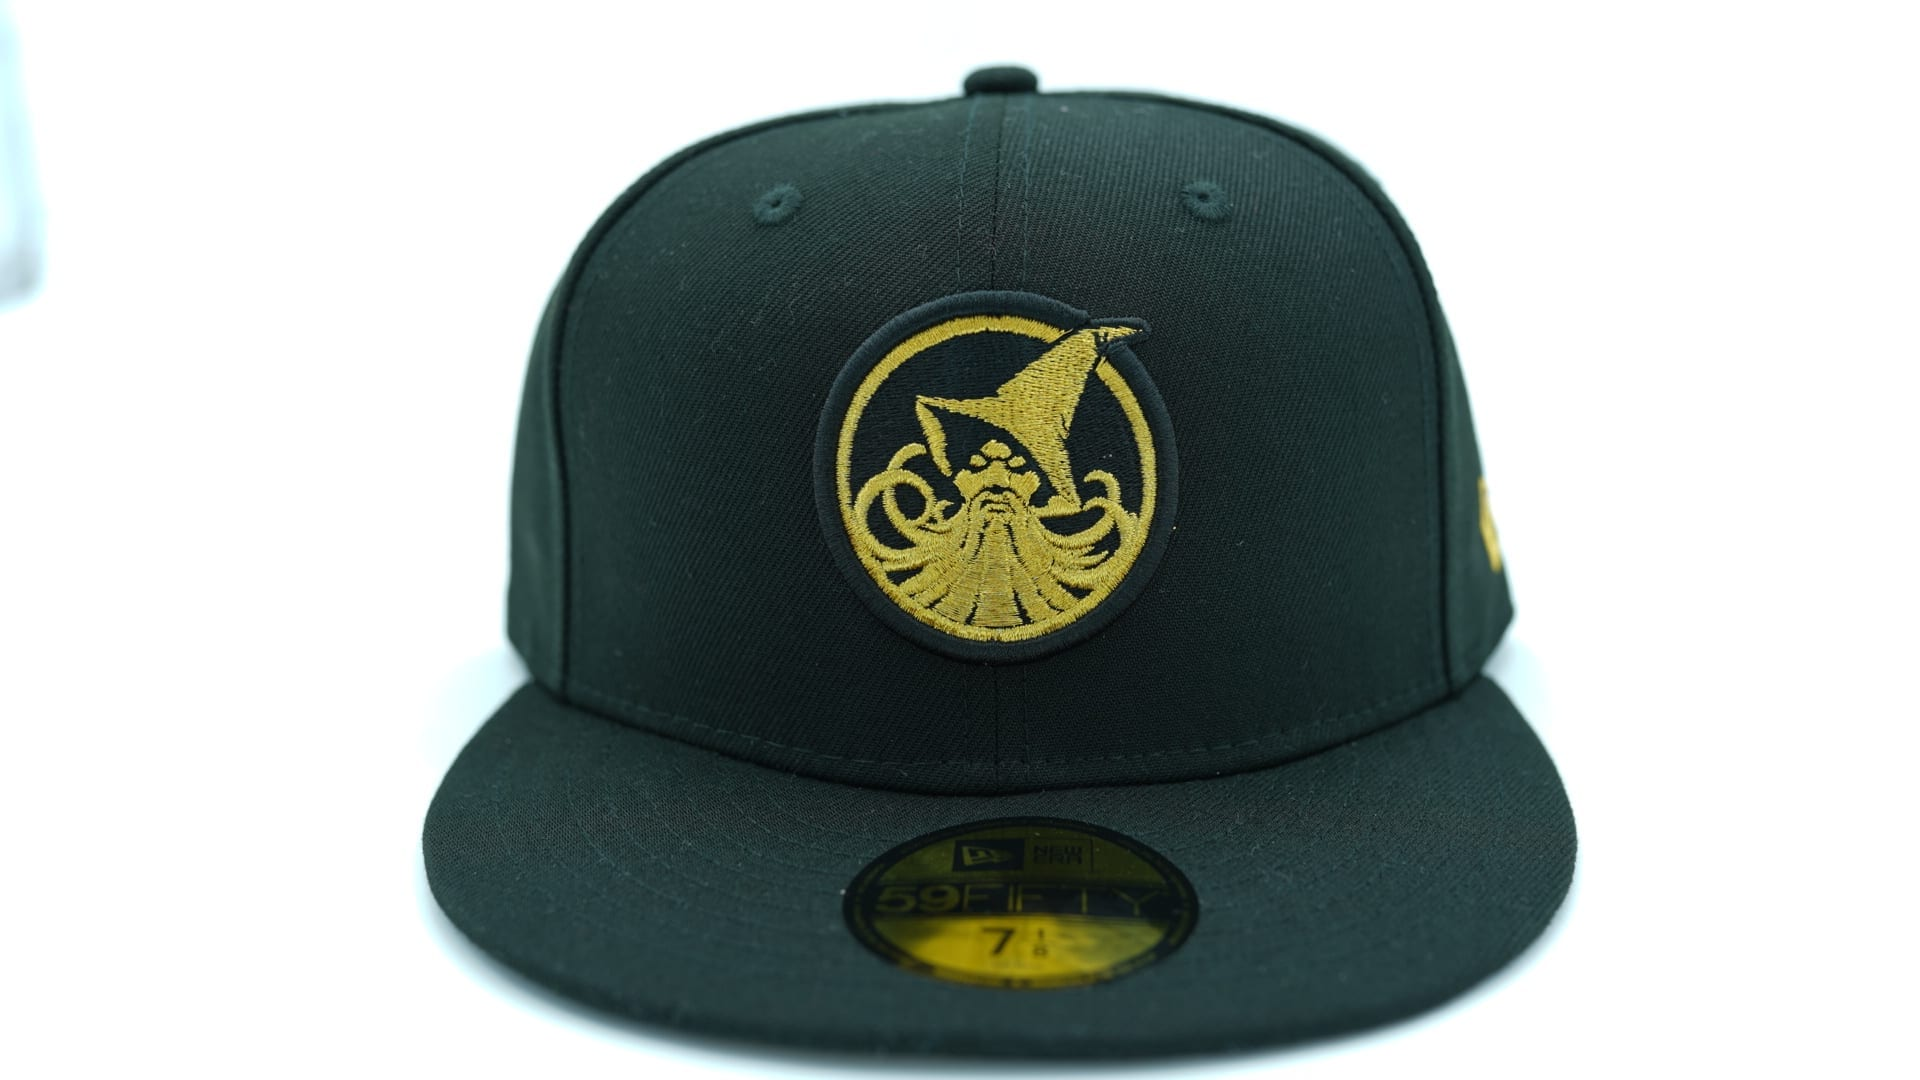 97a7db412be SD Monkey Luffy 59FIfty Fitted Cap. ONE PIECE s 15th anniversary releases  ...